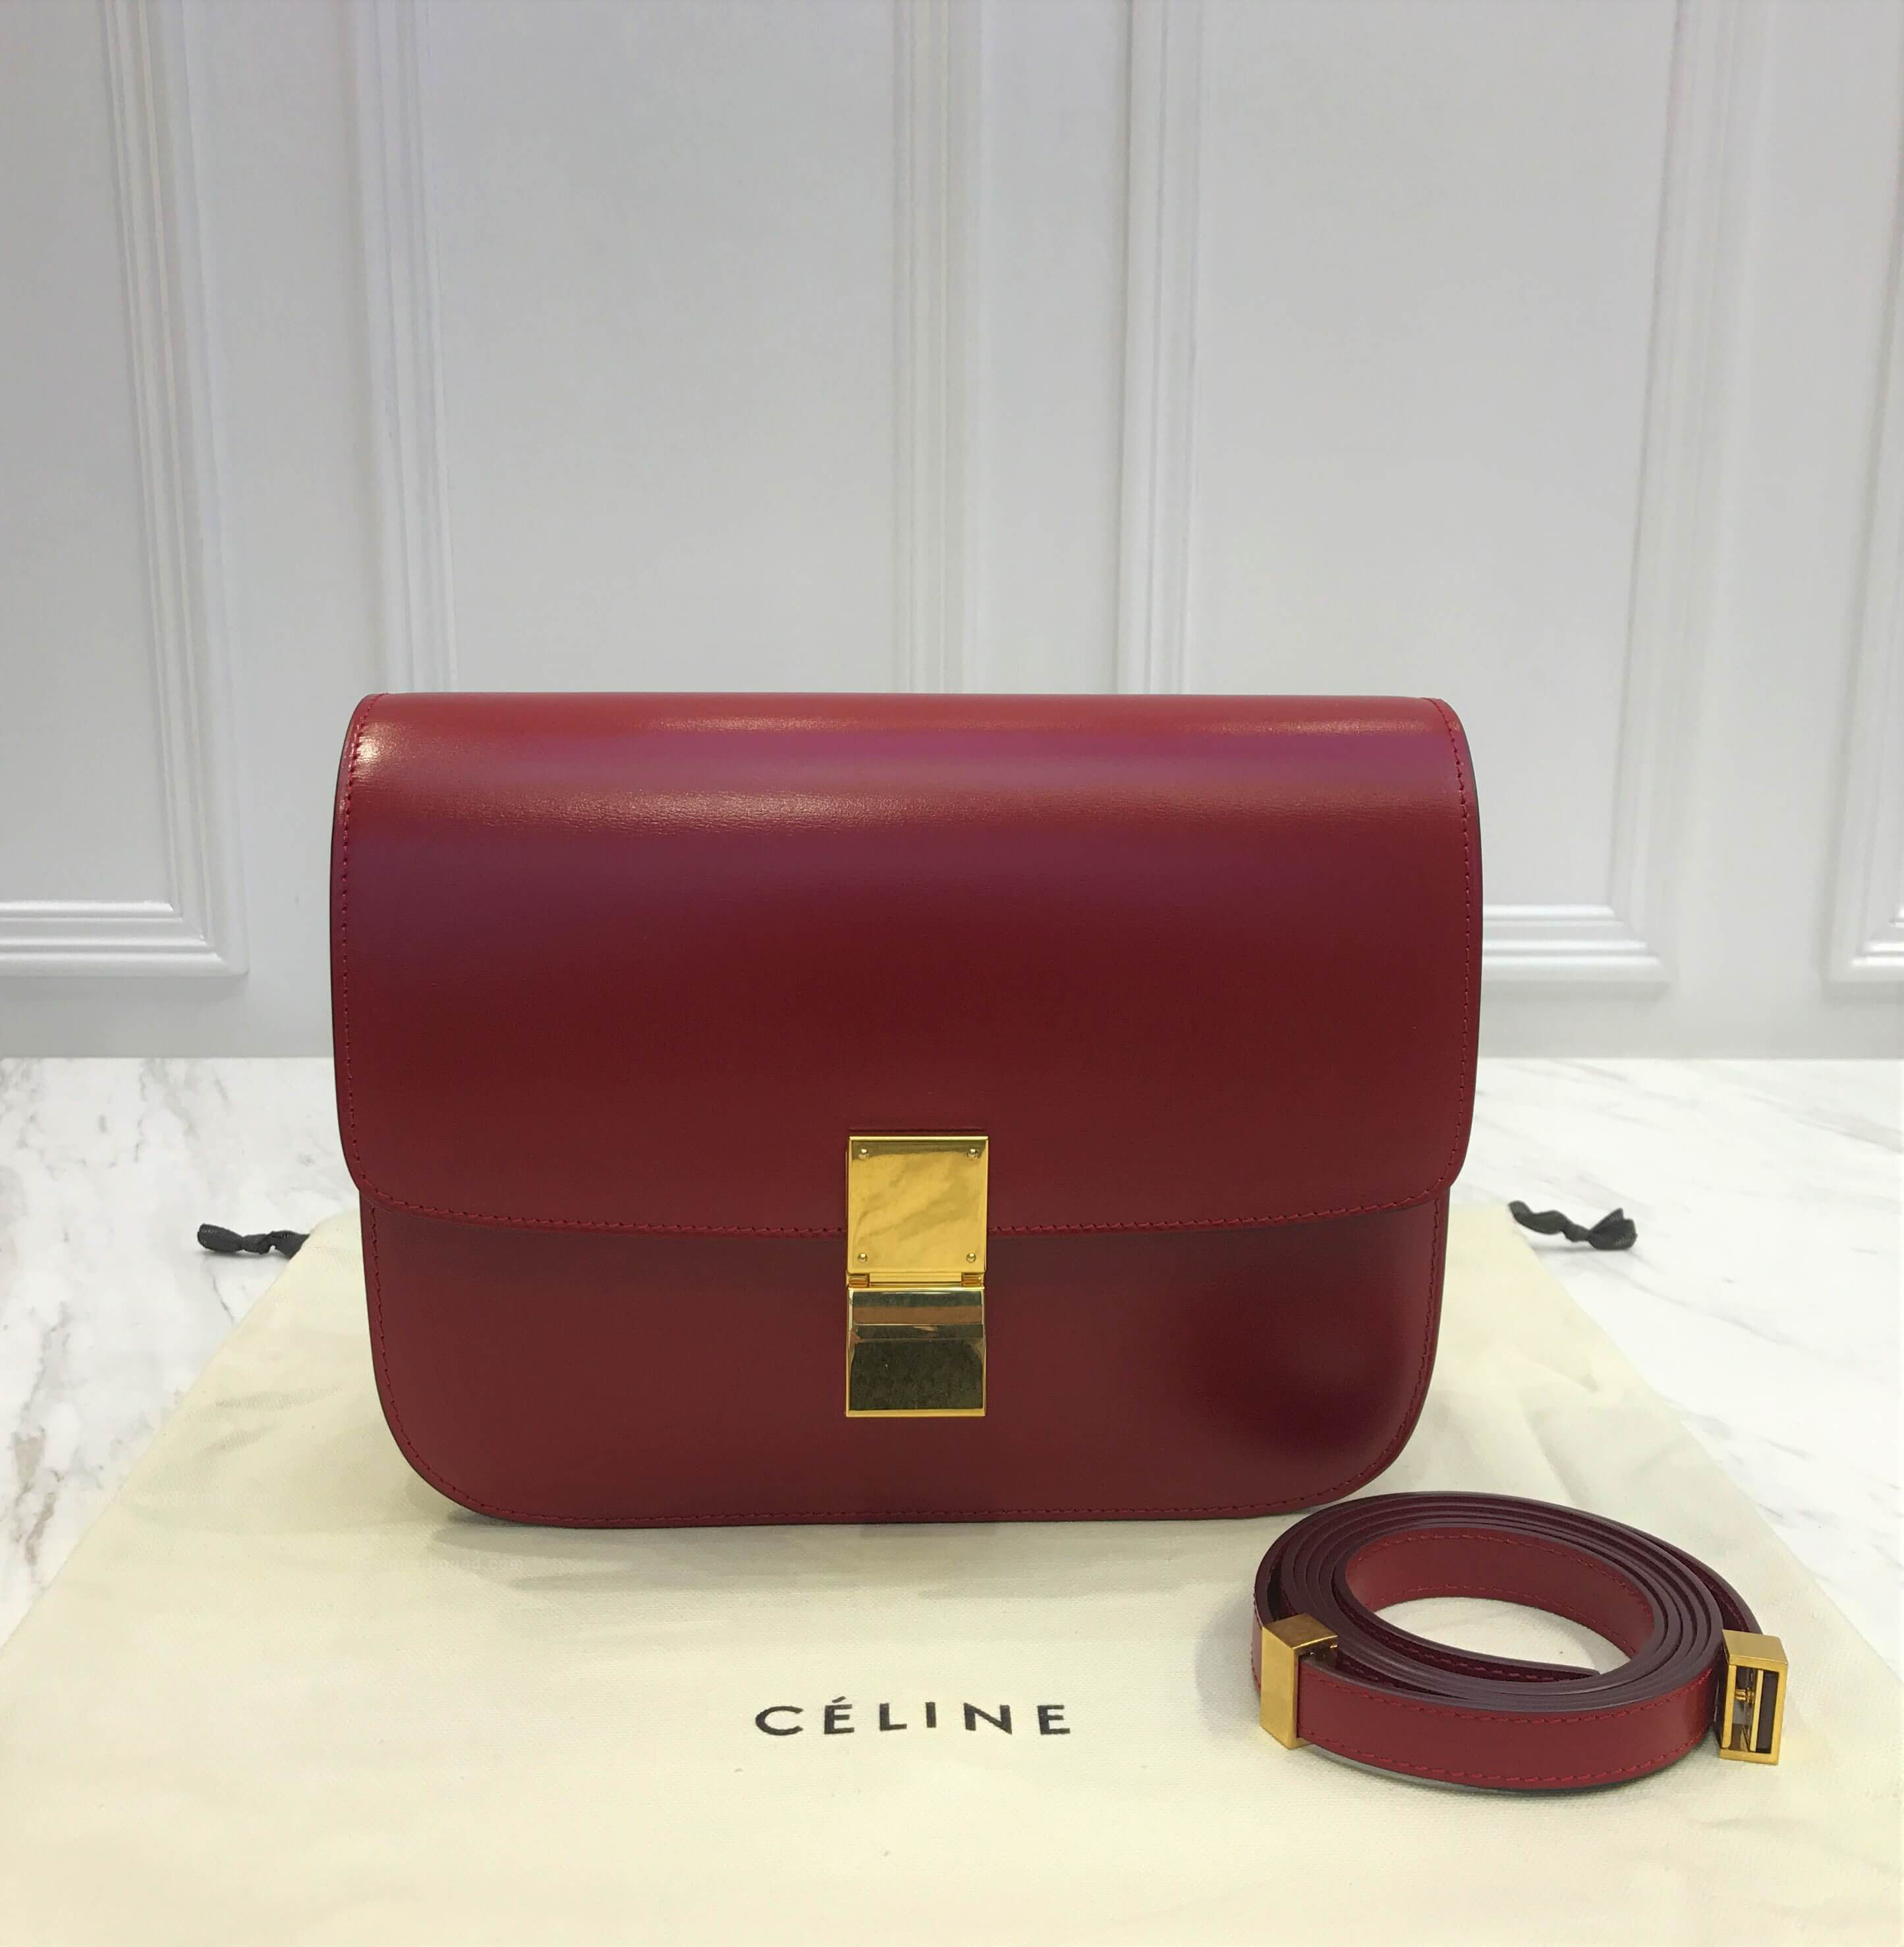 Celine Classic Box Bag Medium in Dark Red Liege Calfskin